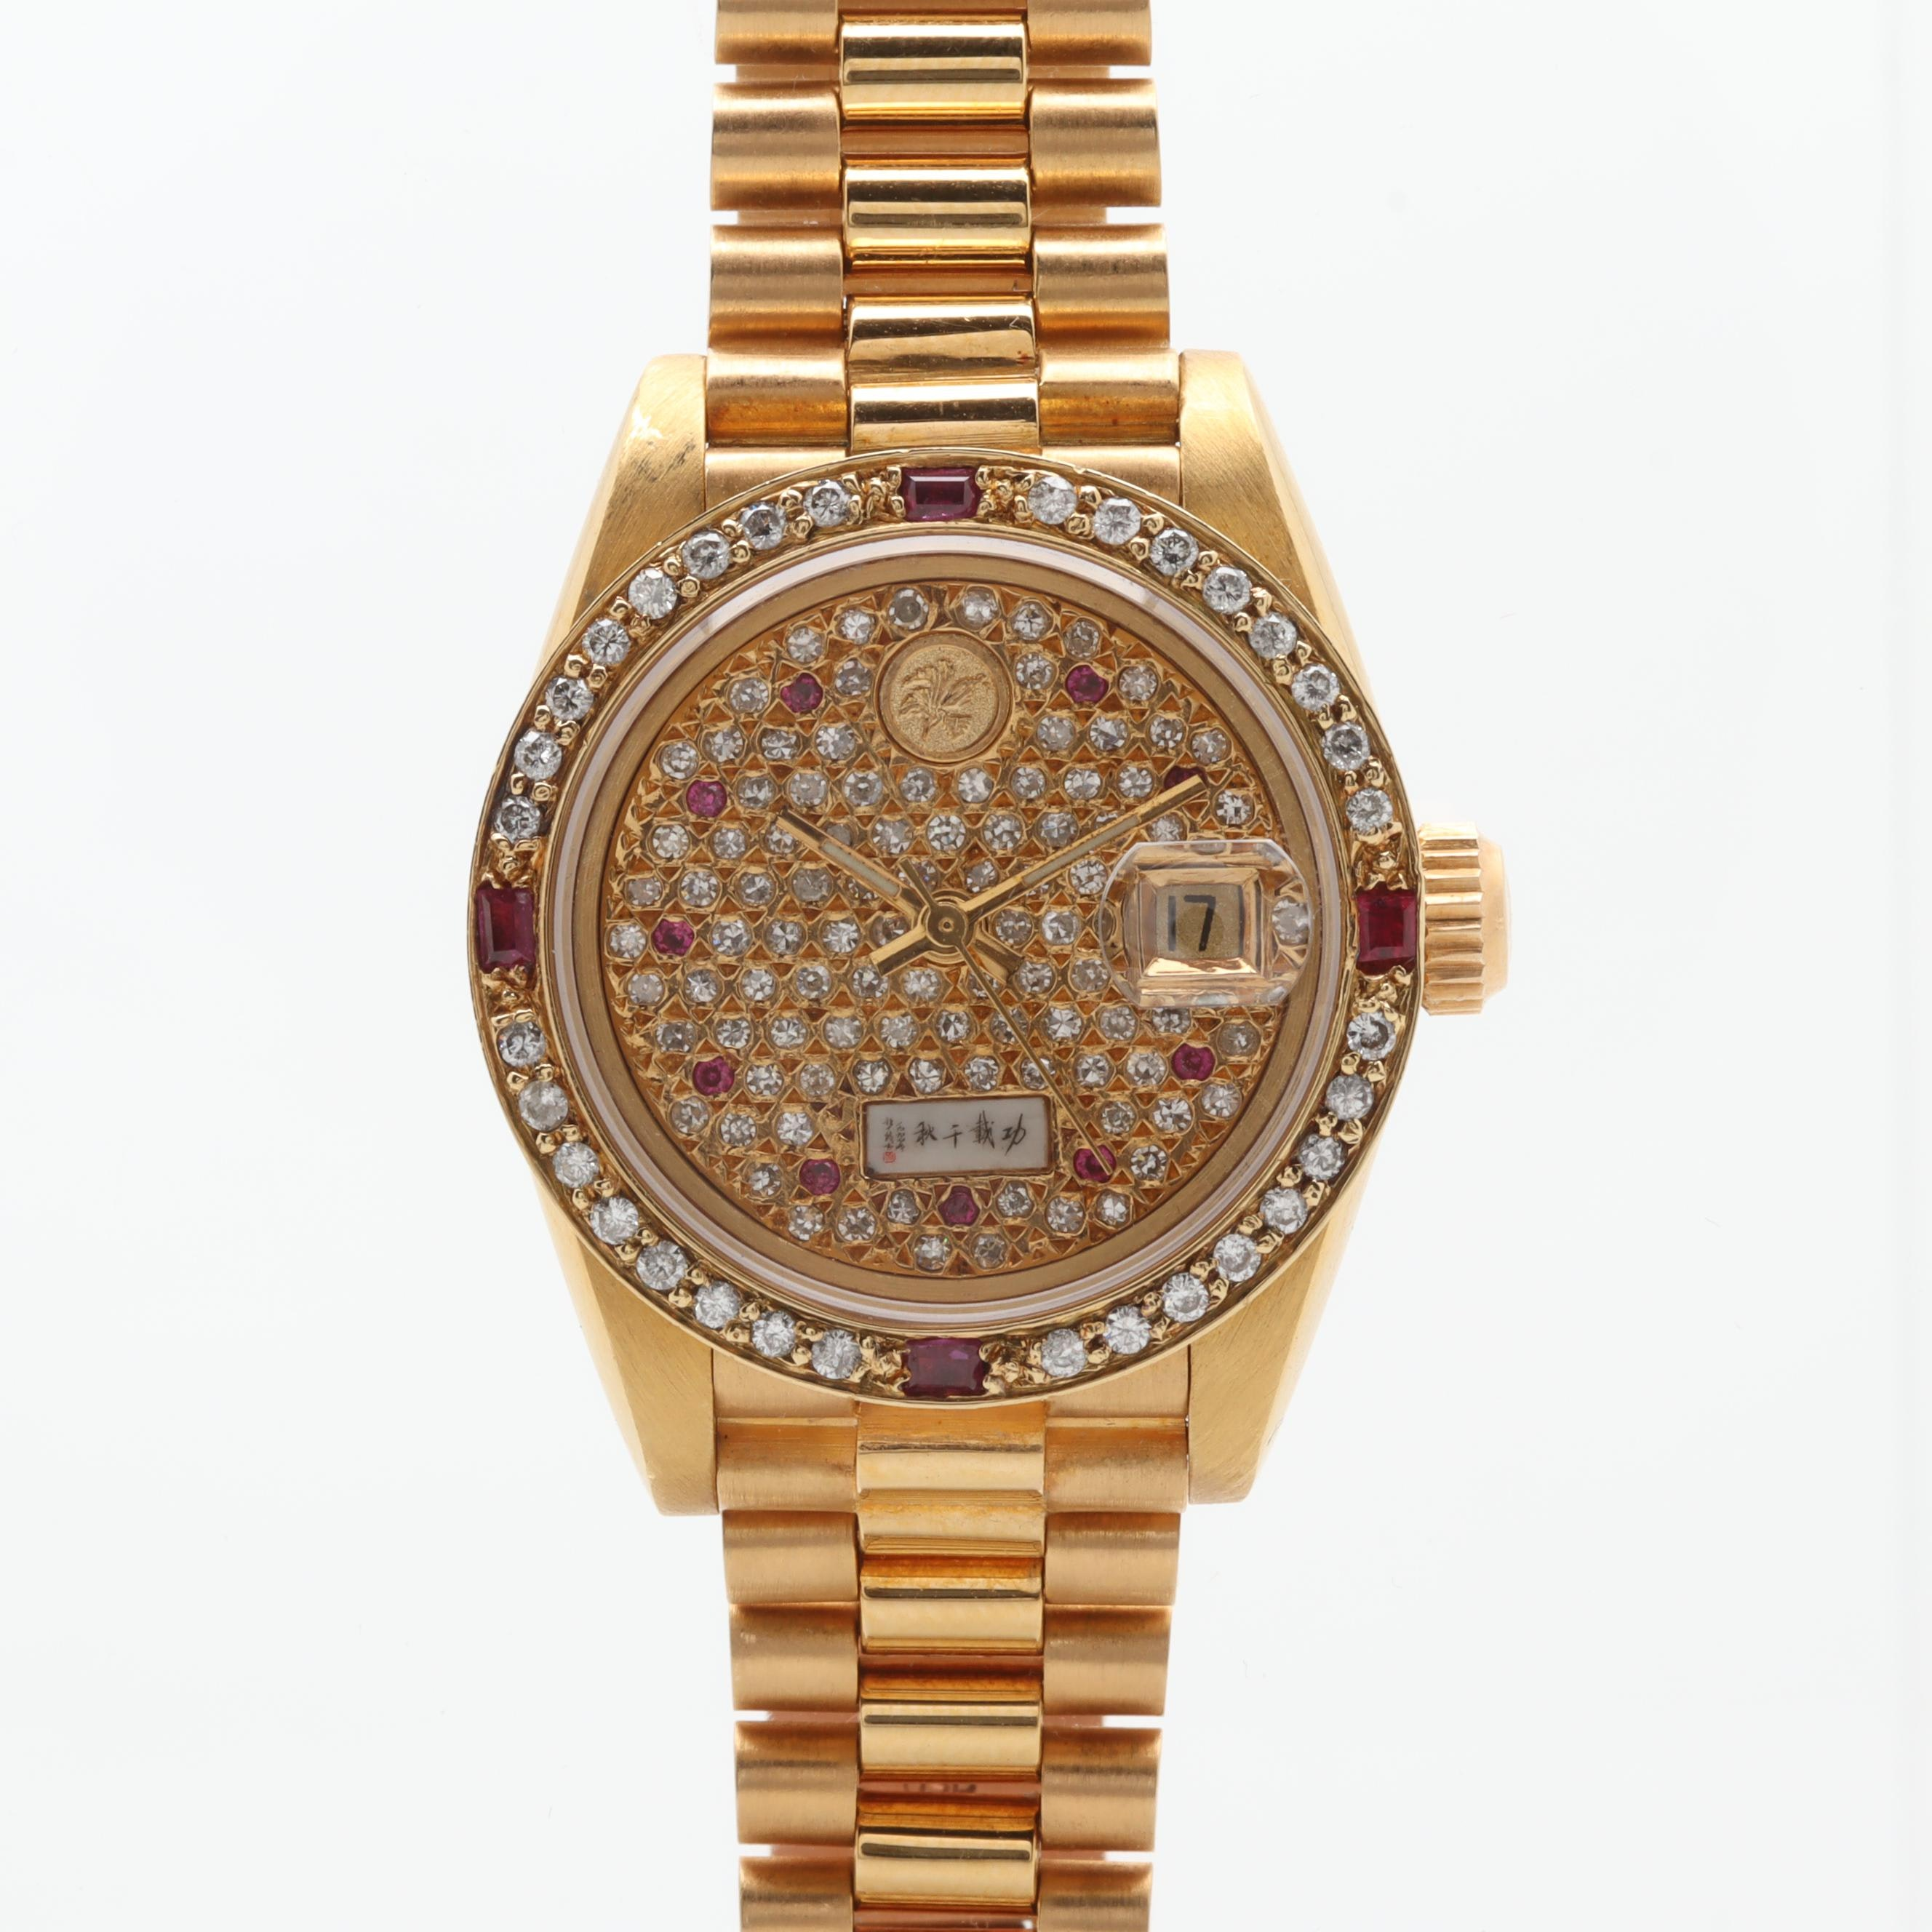 Min Yan Ltd. 18K Yellow Gold Diamond and Ruby Wristwatch